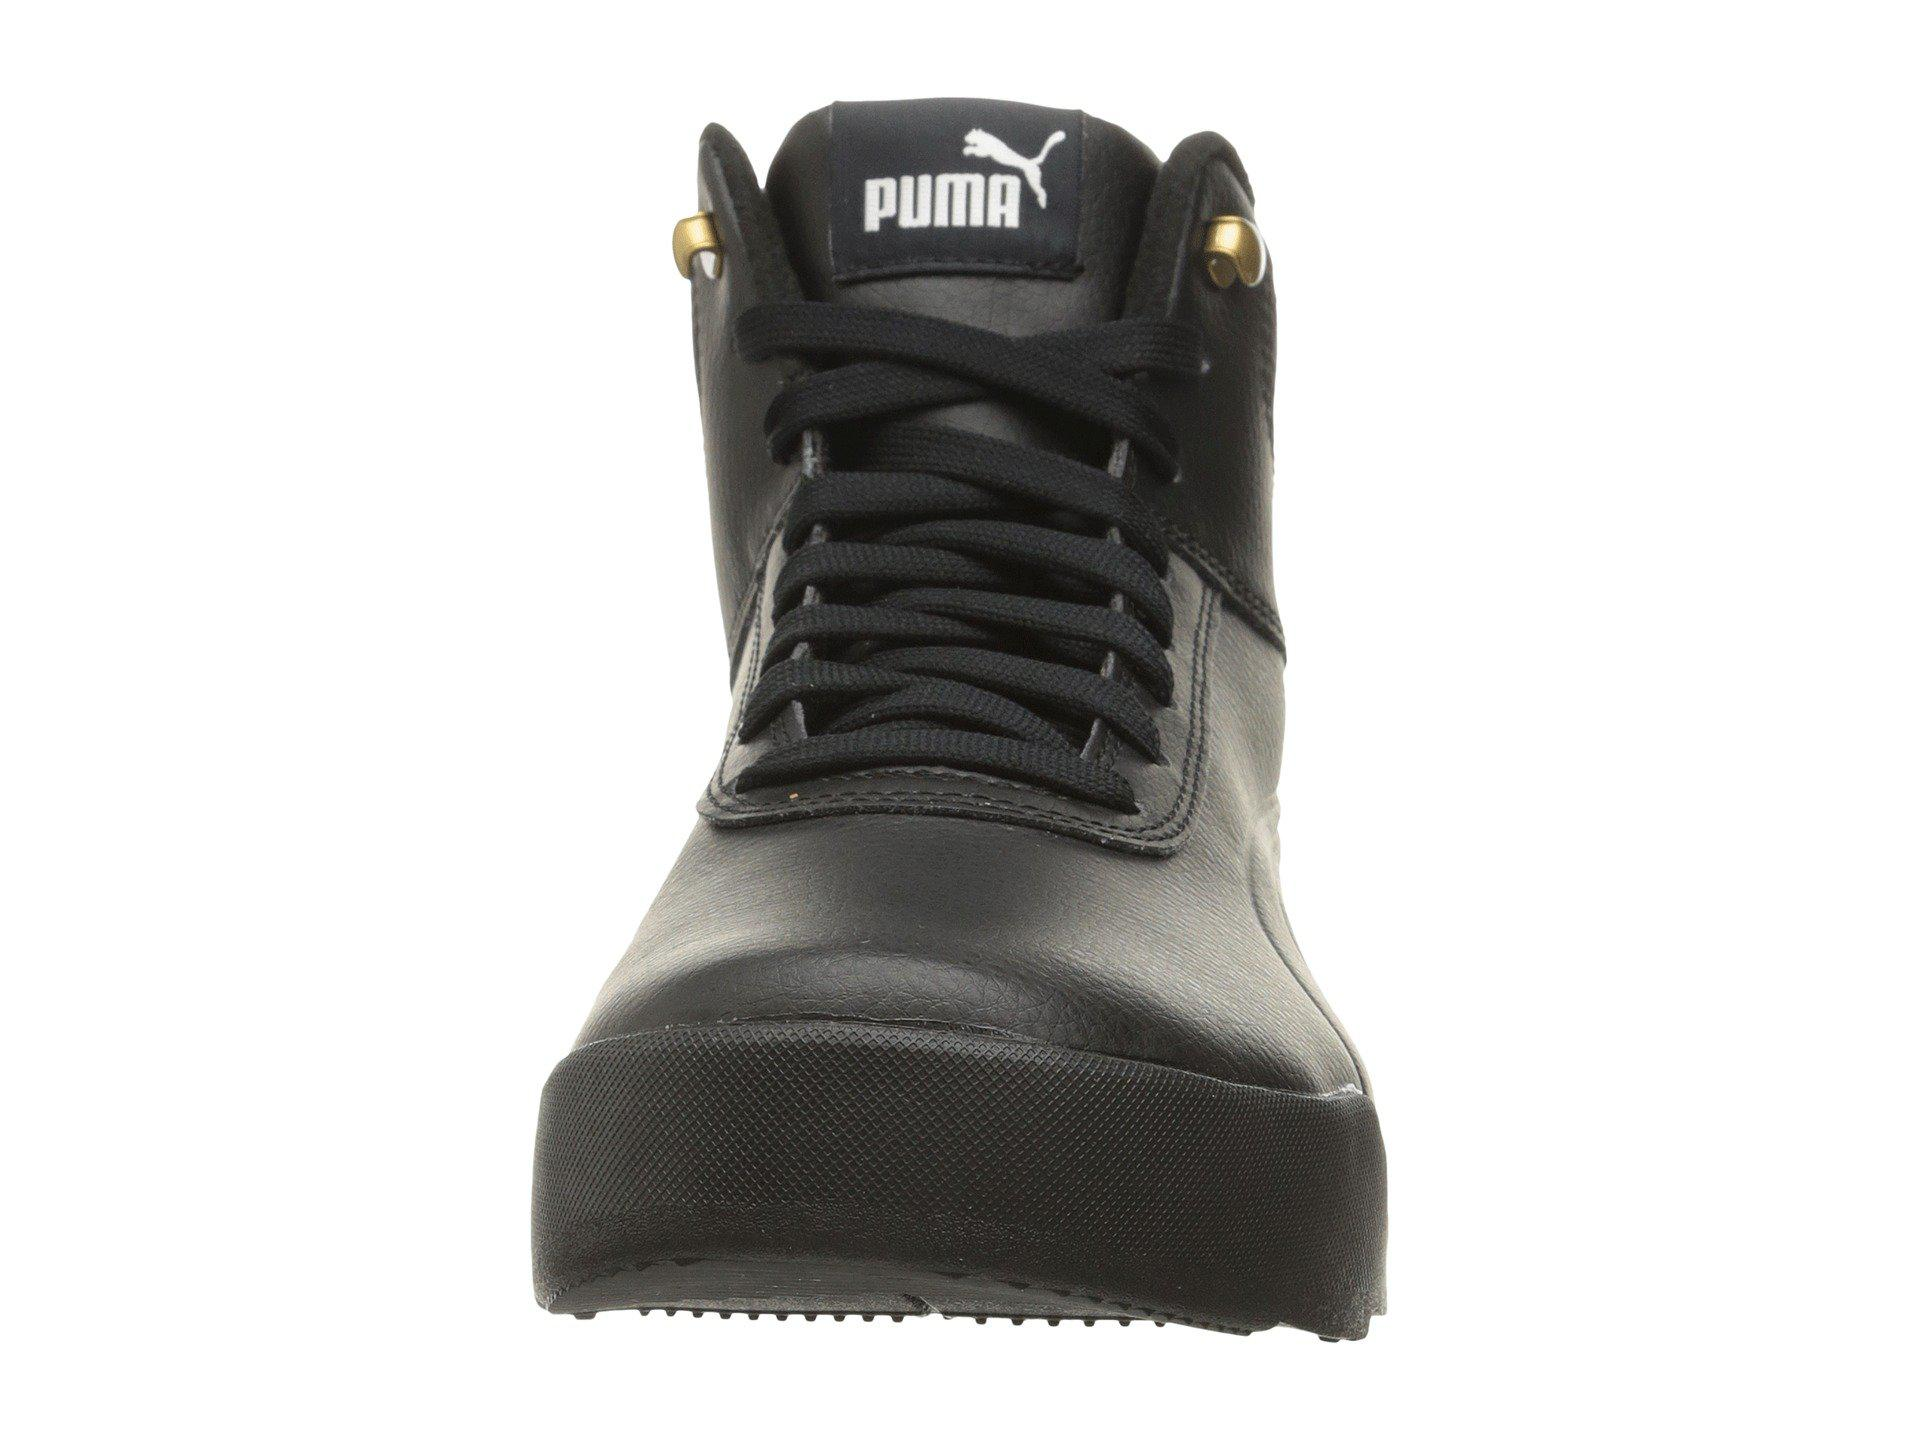 Lyst - PUMA Desierto Sneaker L in Black for Men 515372d01